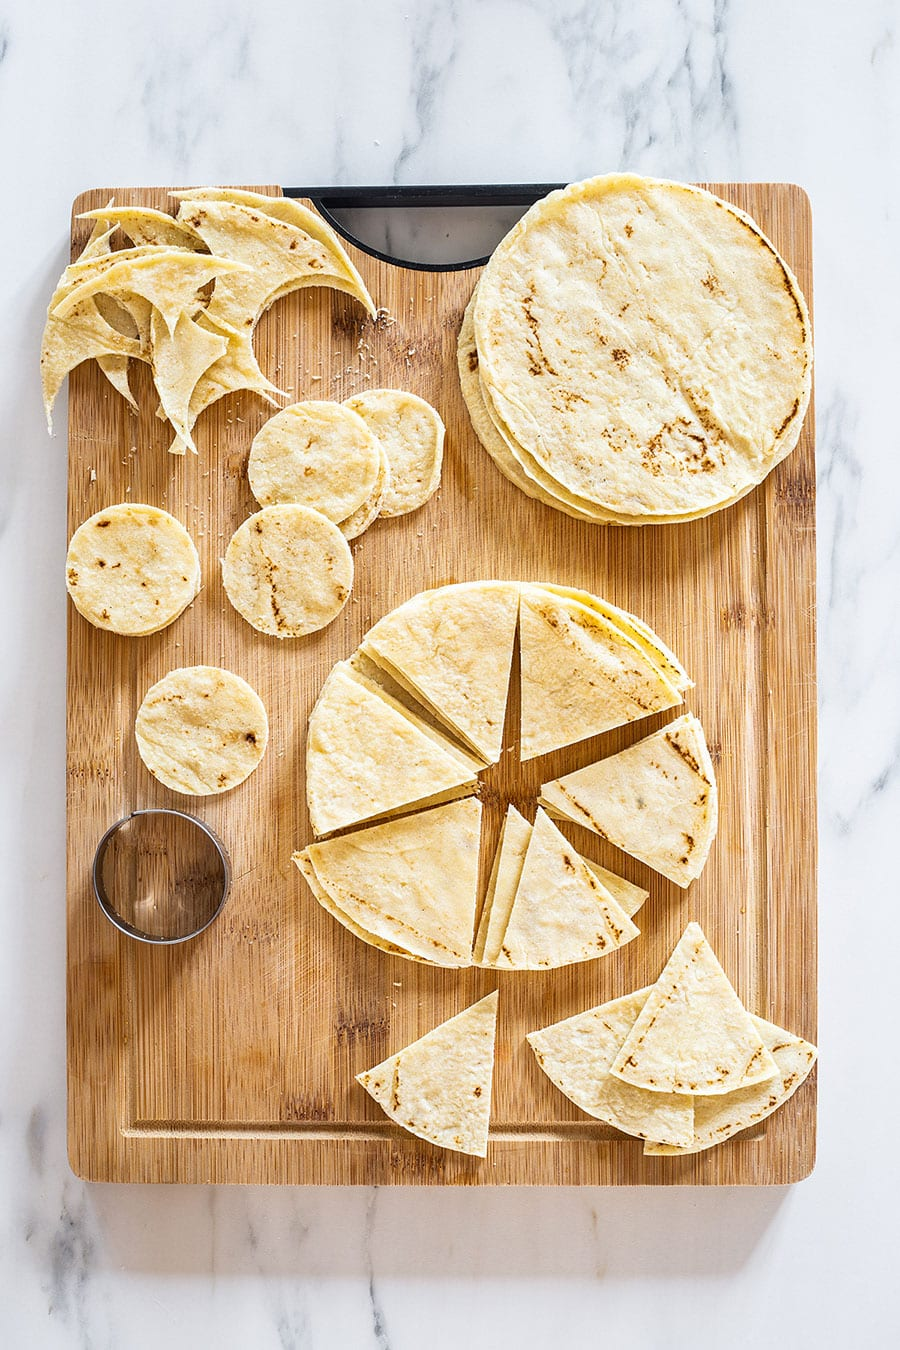 Tortillas cut into various shapes on a cutting board.